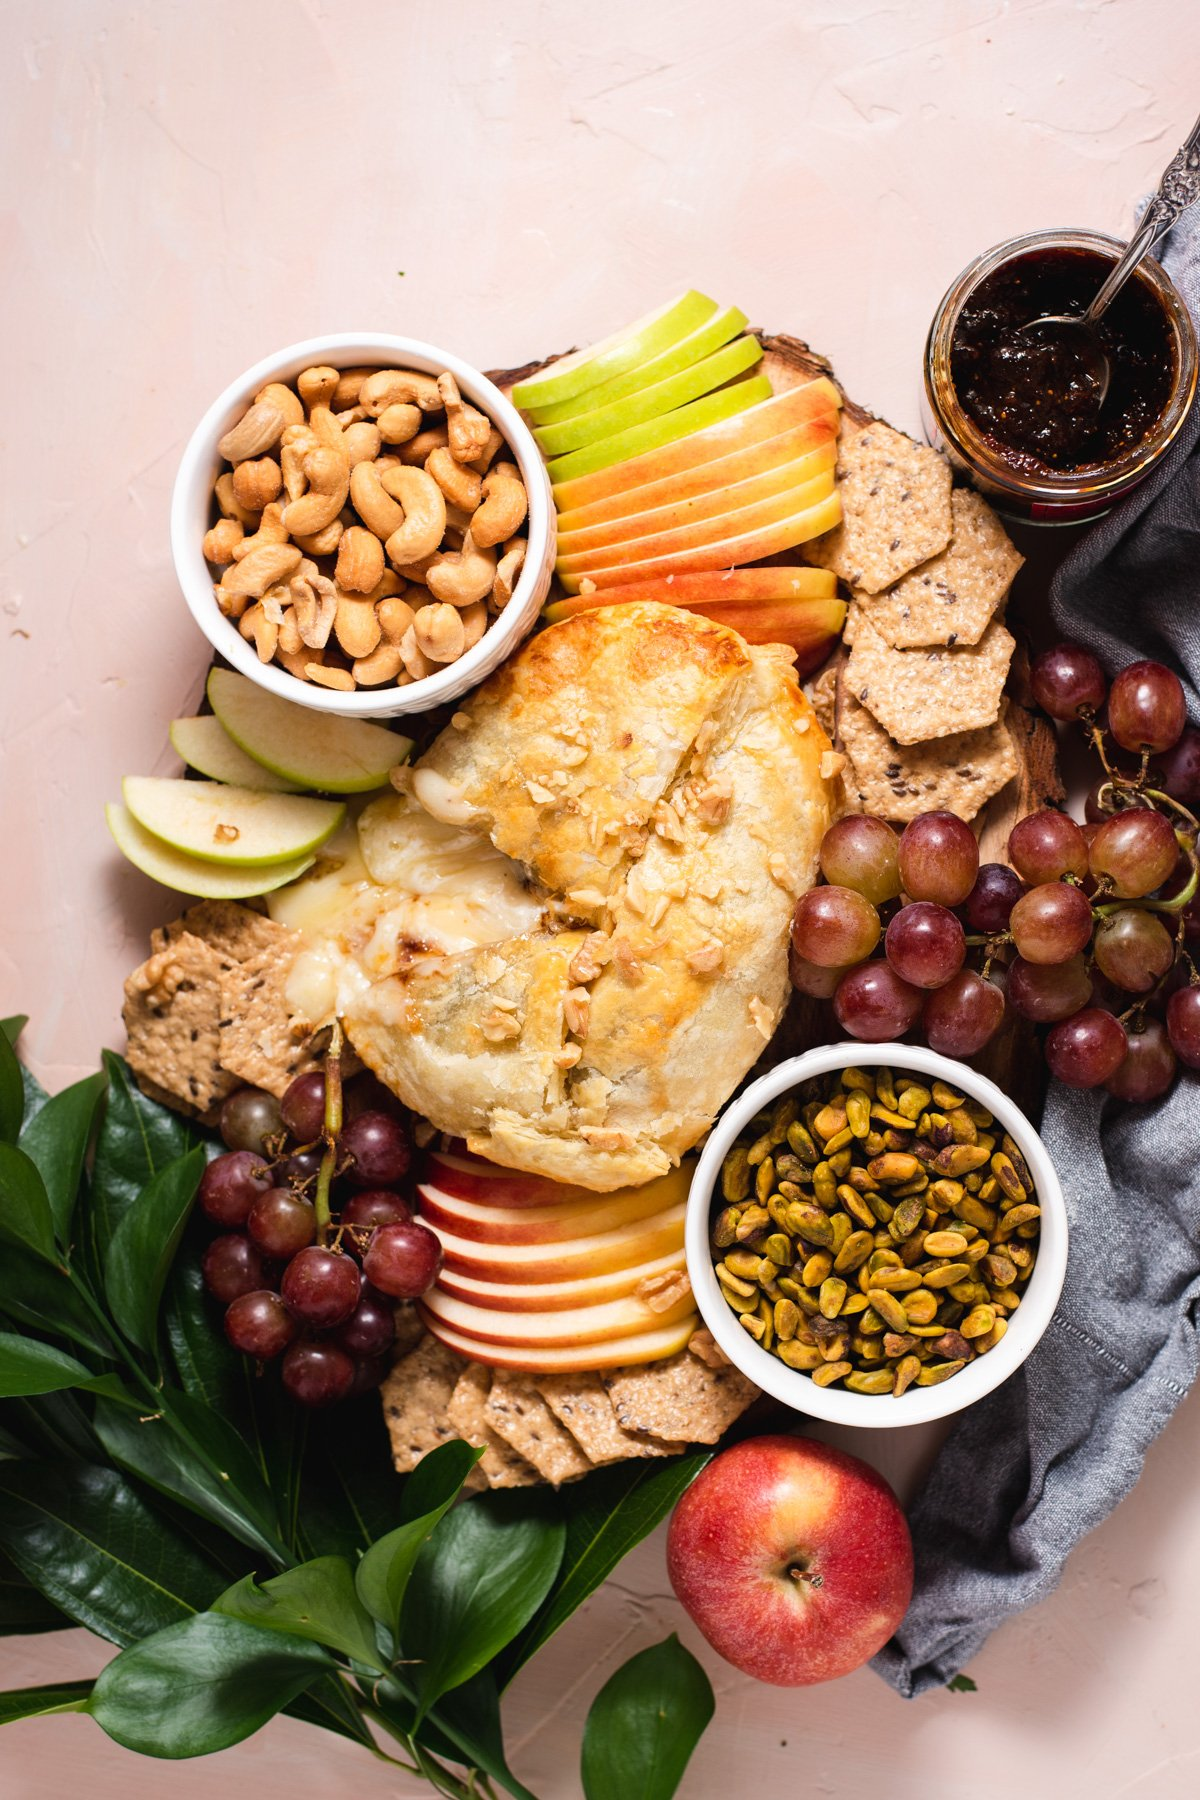 Overhead view of baked brie board with grapes, crackers, nuts and sliced apples